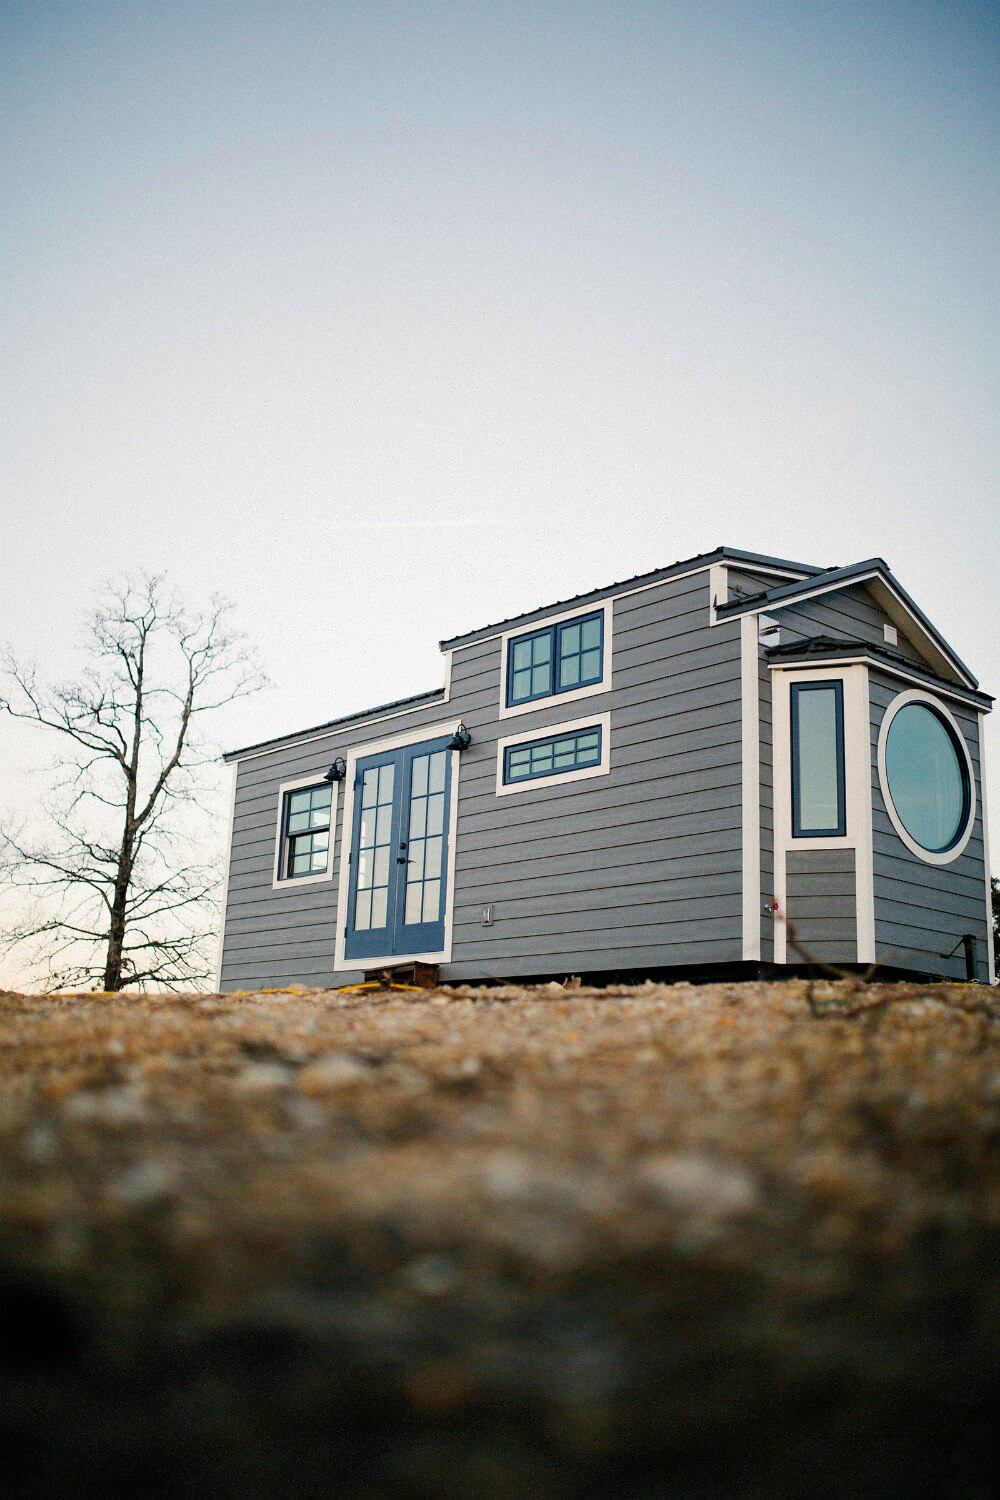 Exterior Shot of the Monacle Tiny House by Wind River